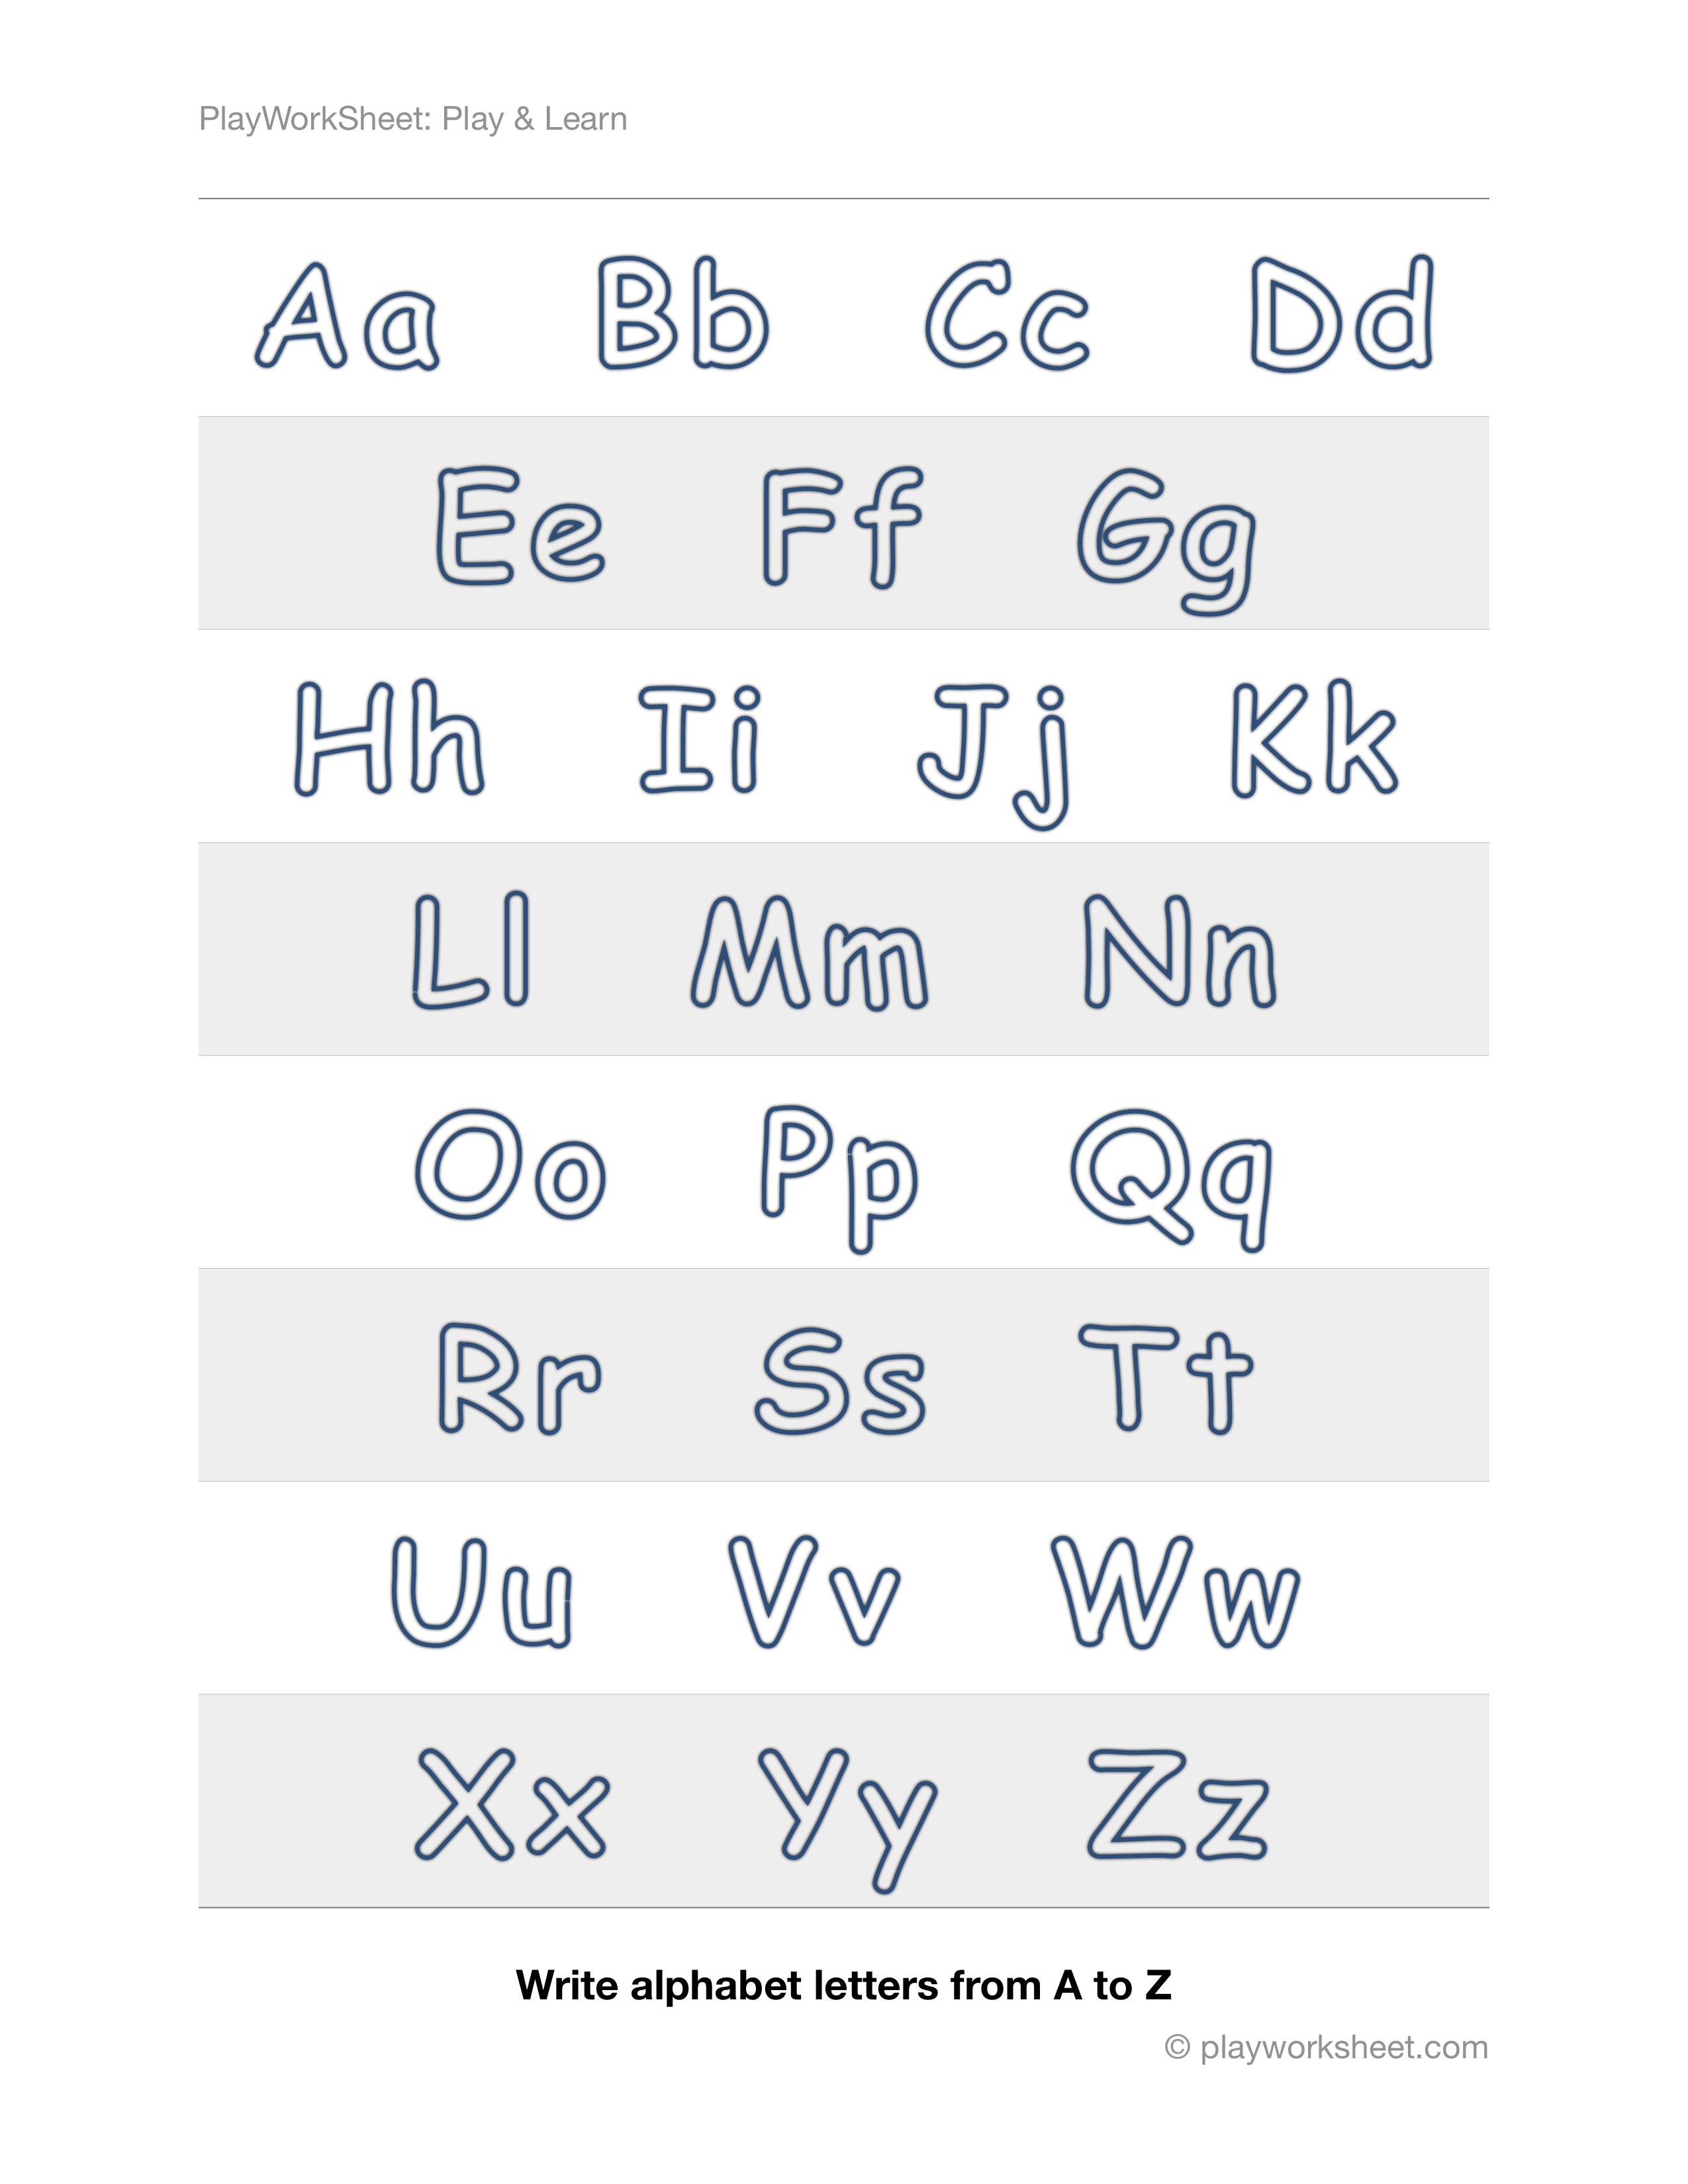 Outlines Of Alphabet Letters From A To Z In Upper And